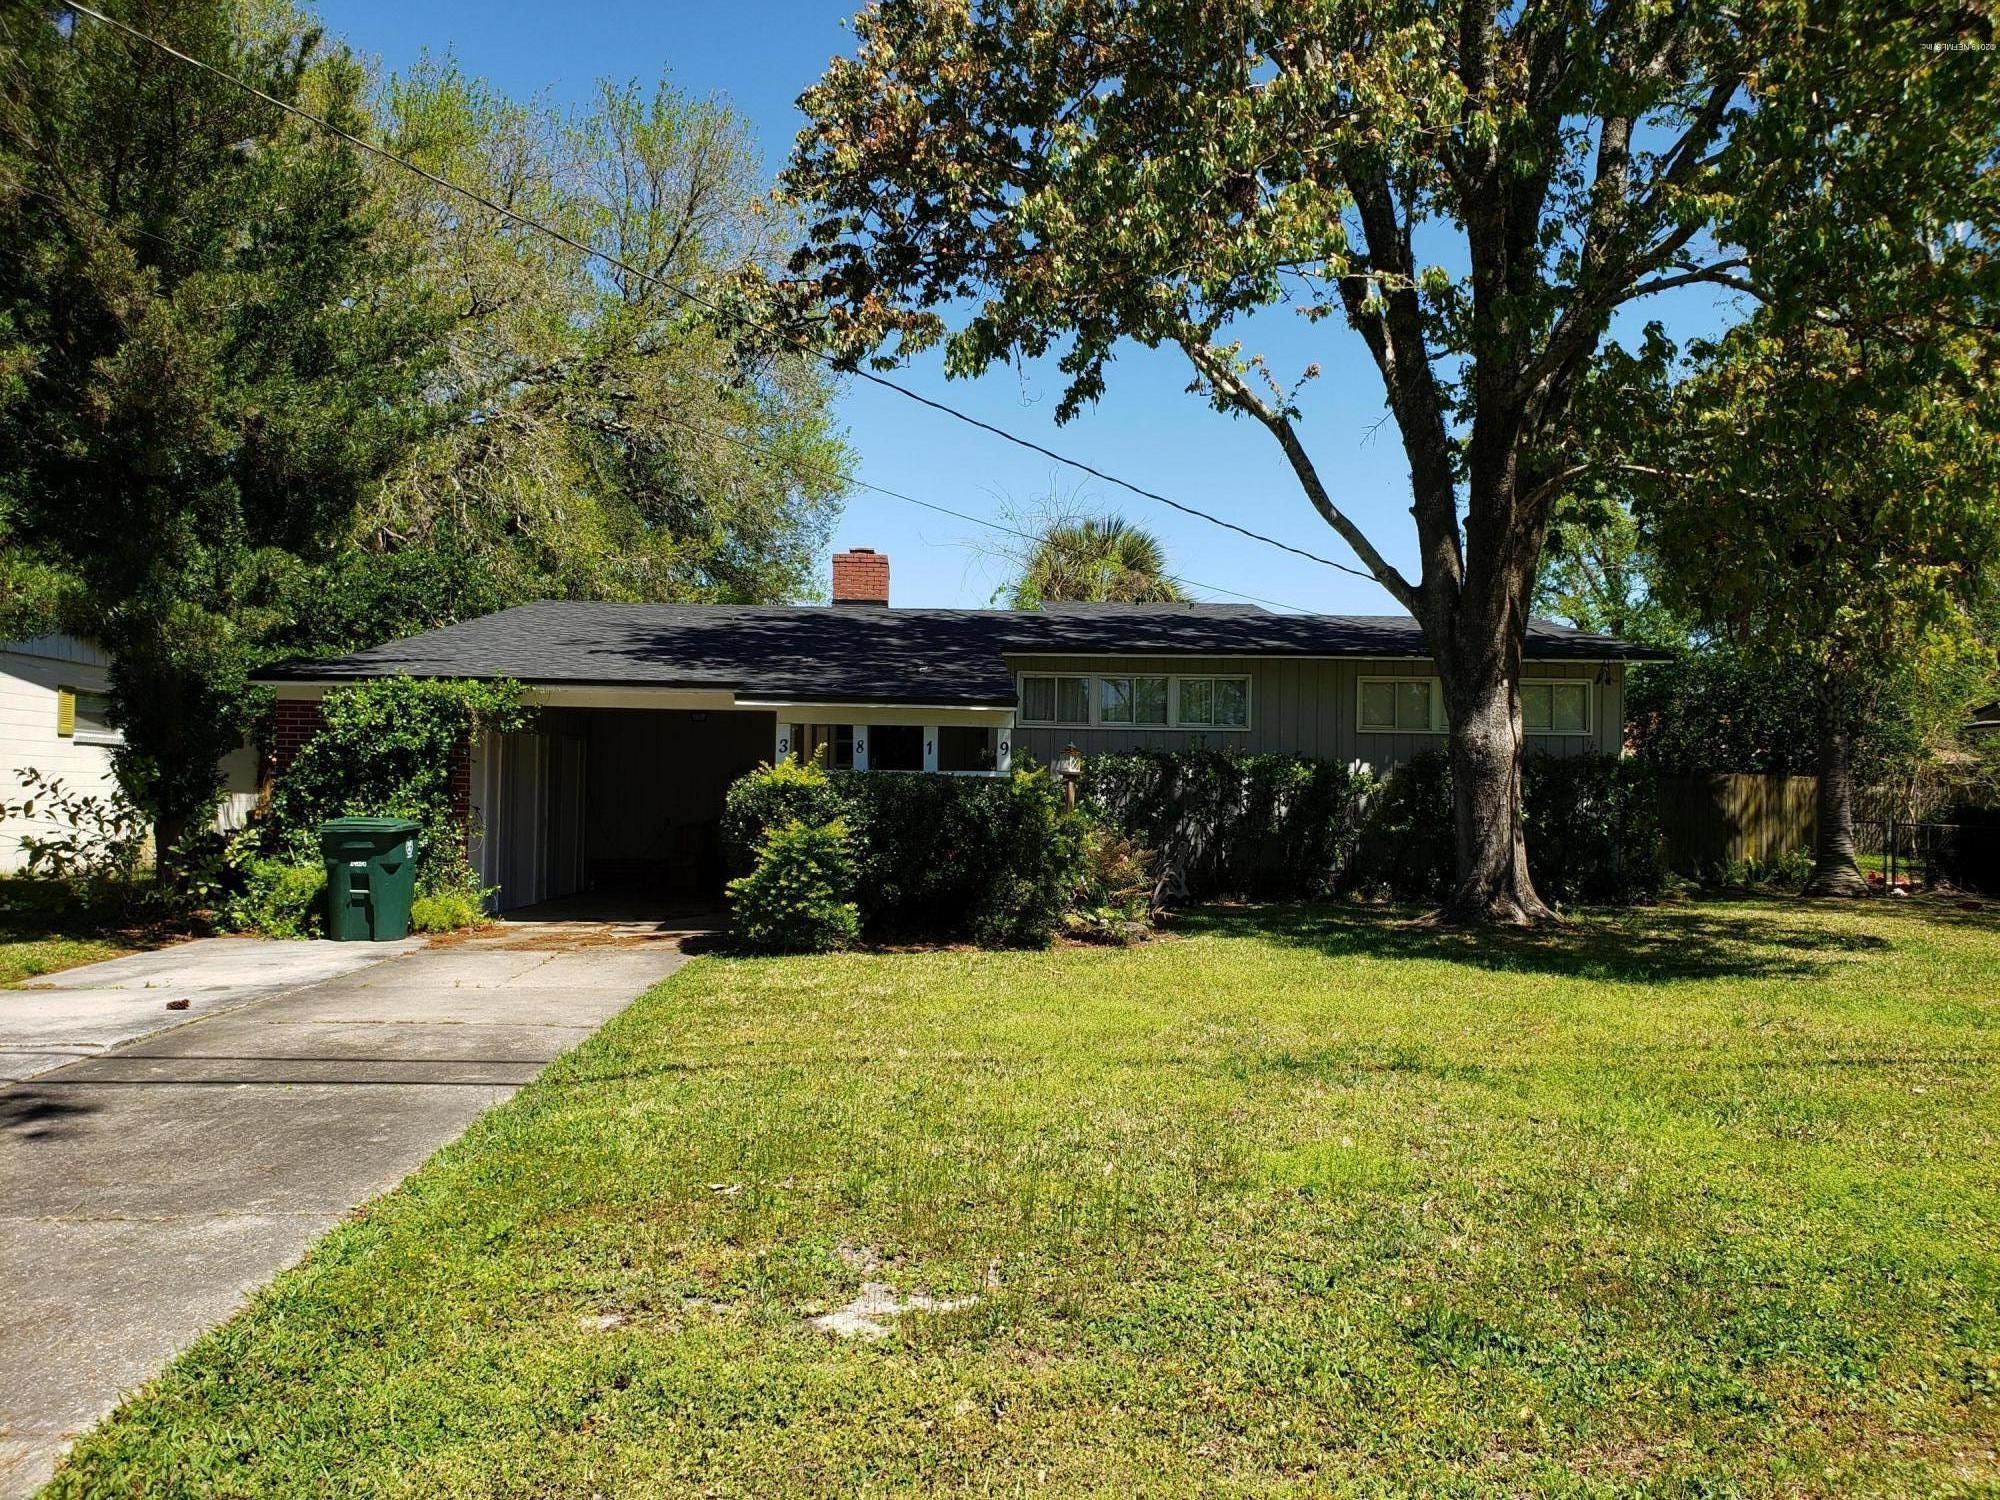 3819 PONCE DE LEON, JACKSONVILLE, FLORIDA 32217, 3 Bedrooms Bedrooms, ,1 BathroomBathrooms,Residential - single family,For sale,PONCE DE LEON,986361